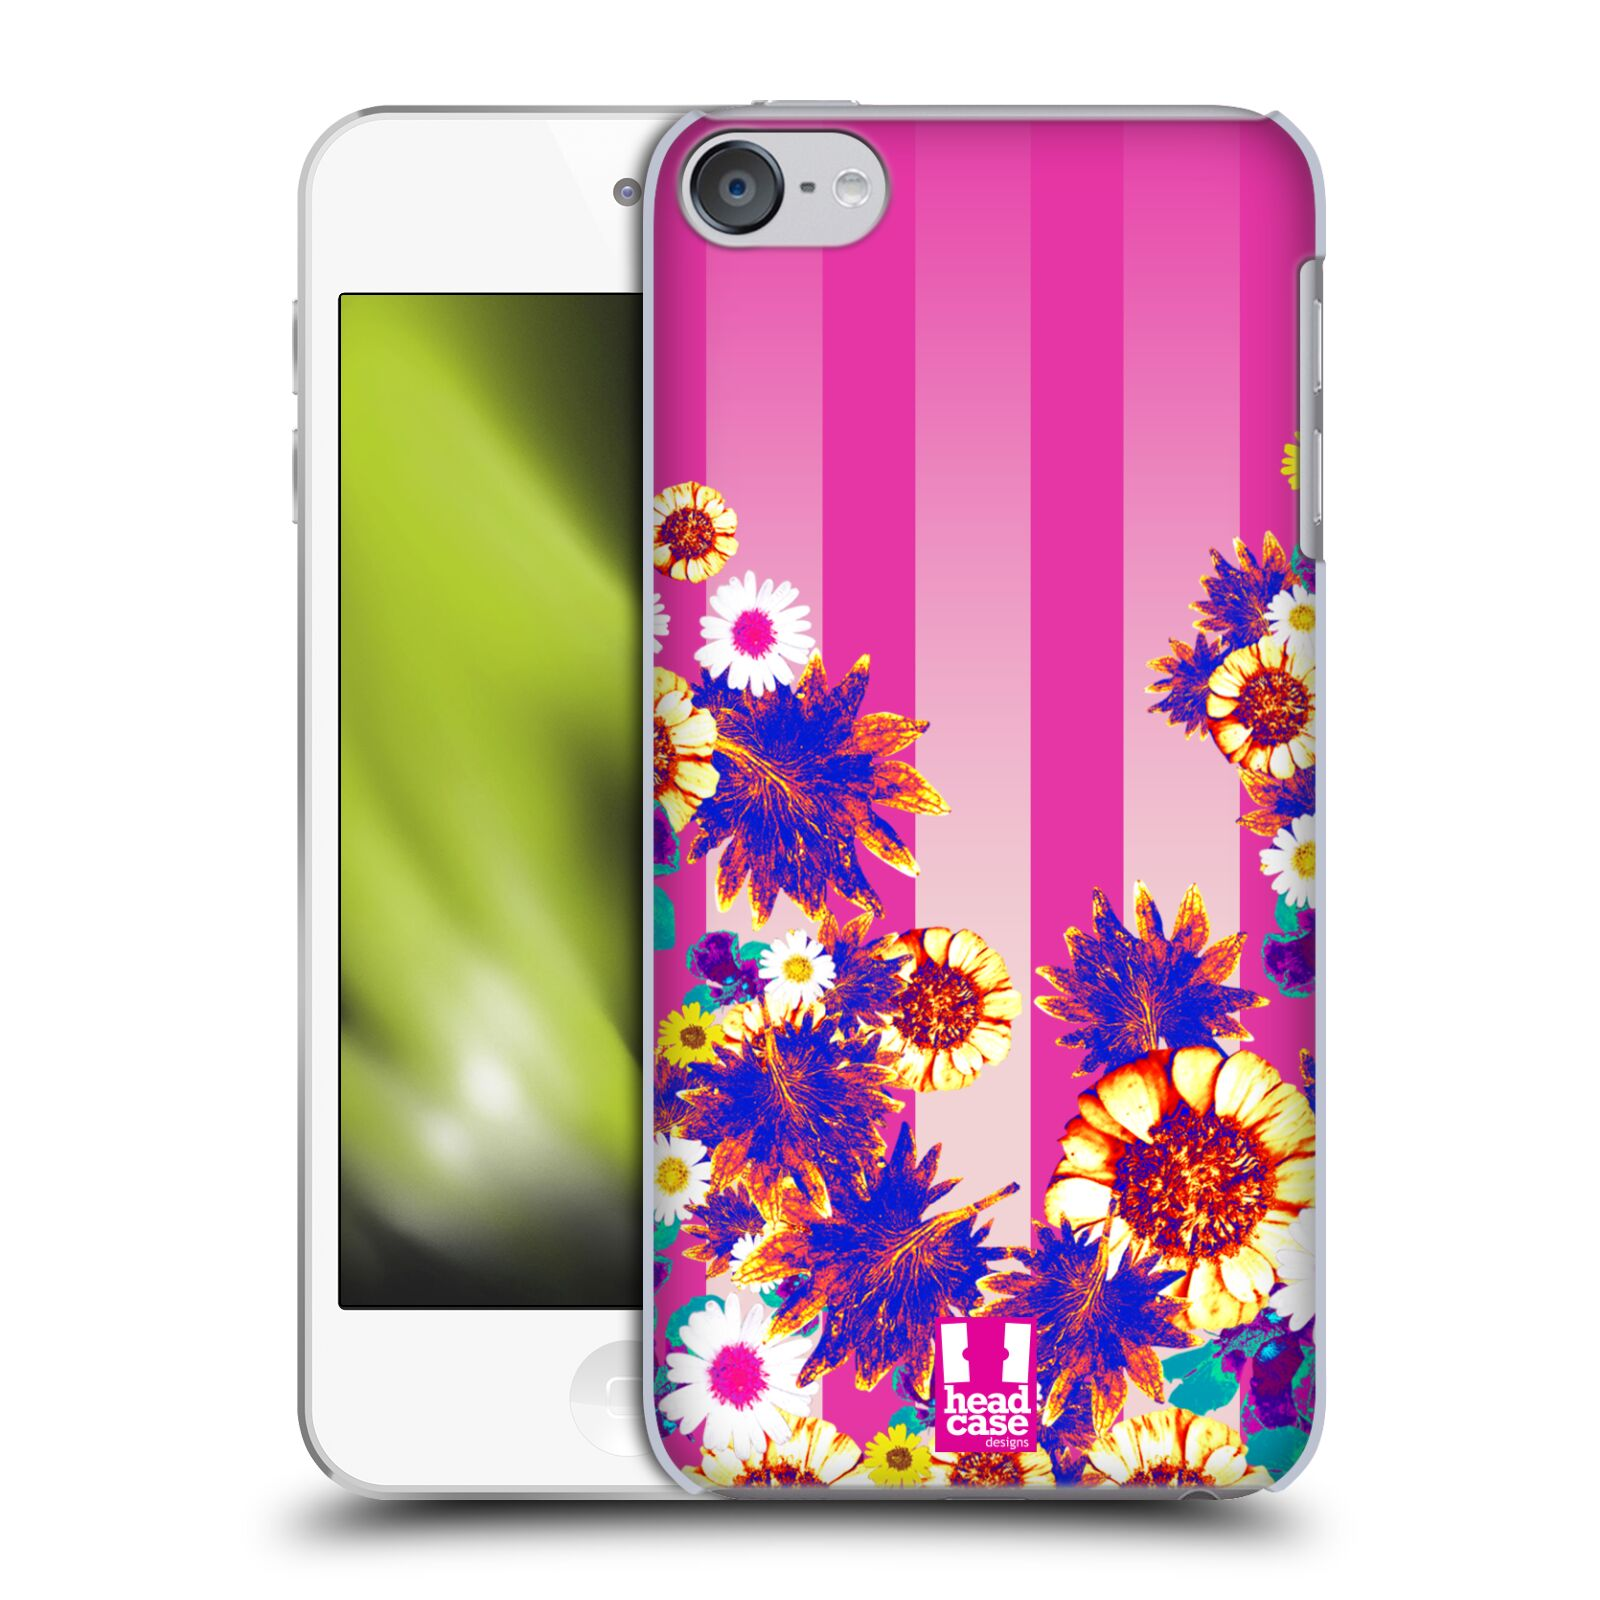 HEAD CASE DESIGNS PINK EMPIRE HARD BACK CASE FOR APPLE ... Ipod 5 Pink Cases